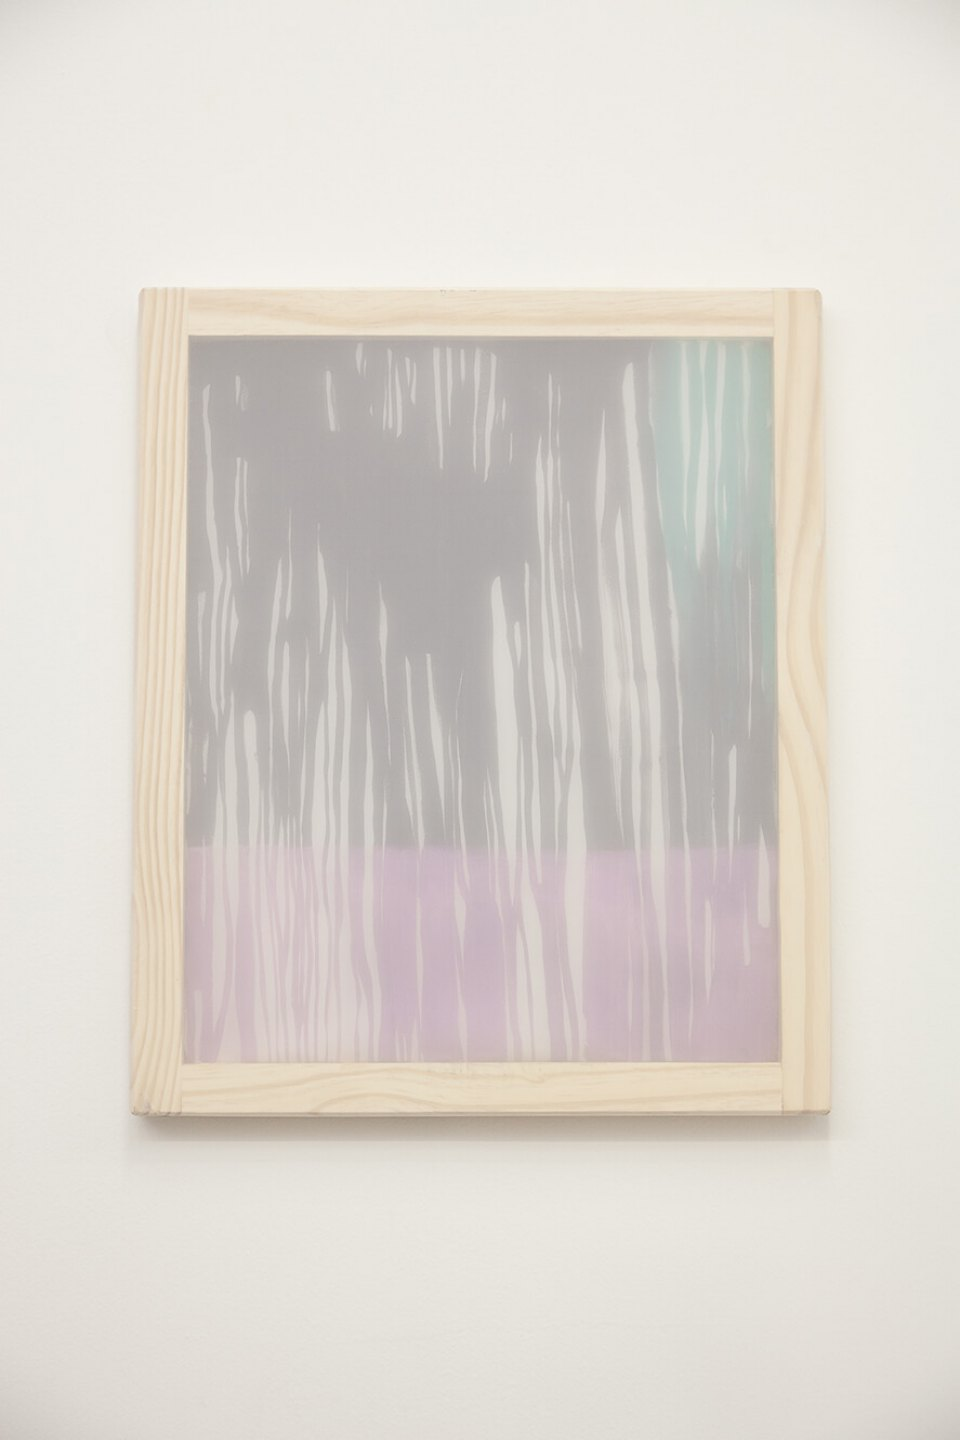 Marina Perez Simão<em>,Untitled</em>, 2012, acrylic and pigment iridescent on polyester and overlay canvas, 60×50 inches - Mendes Wood DM